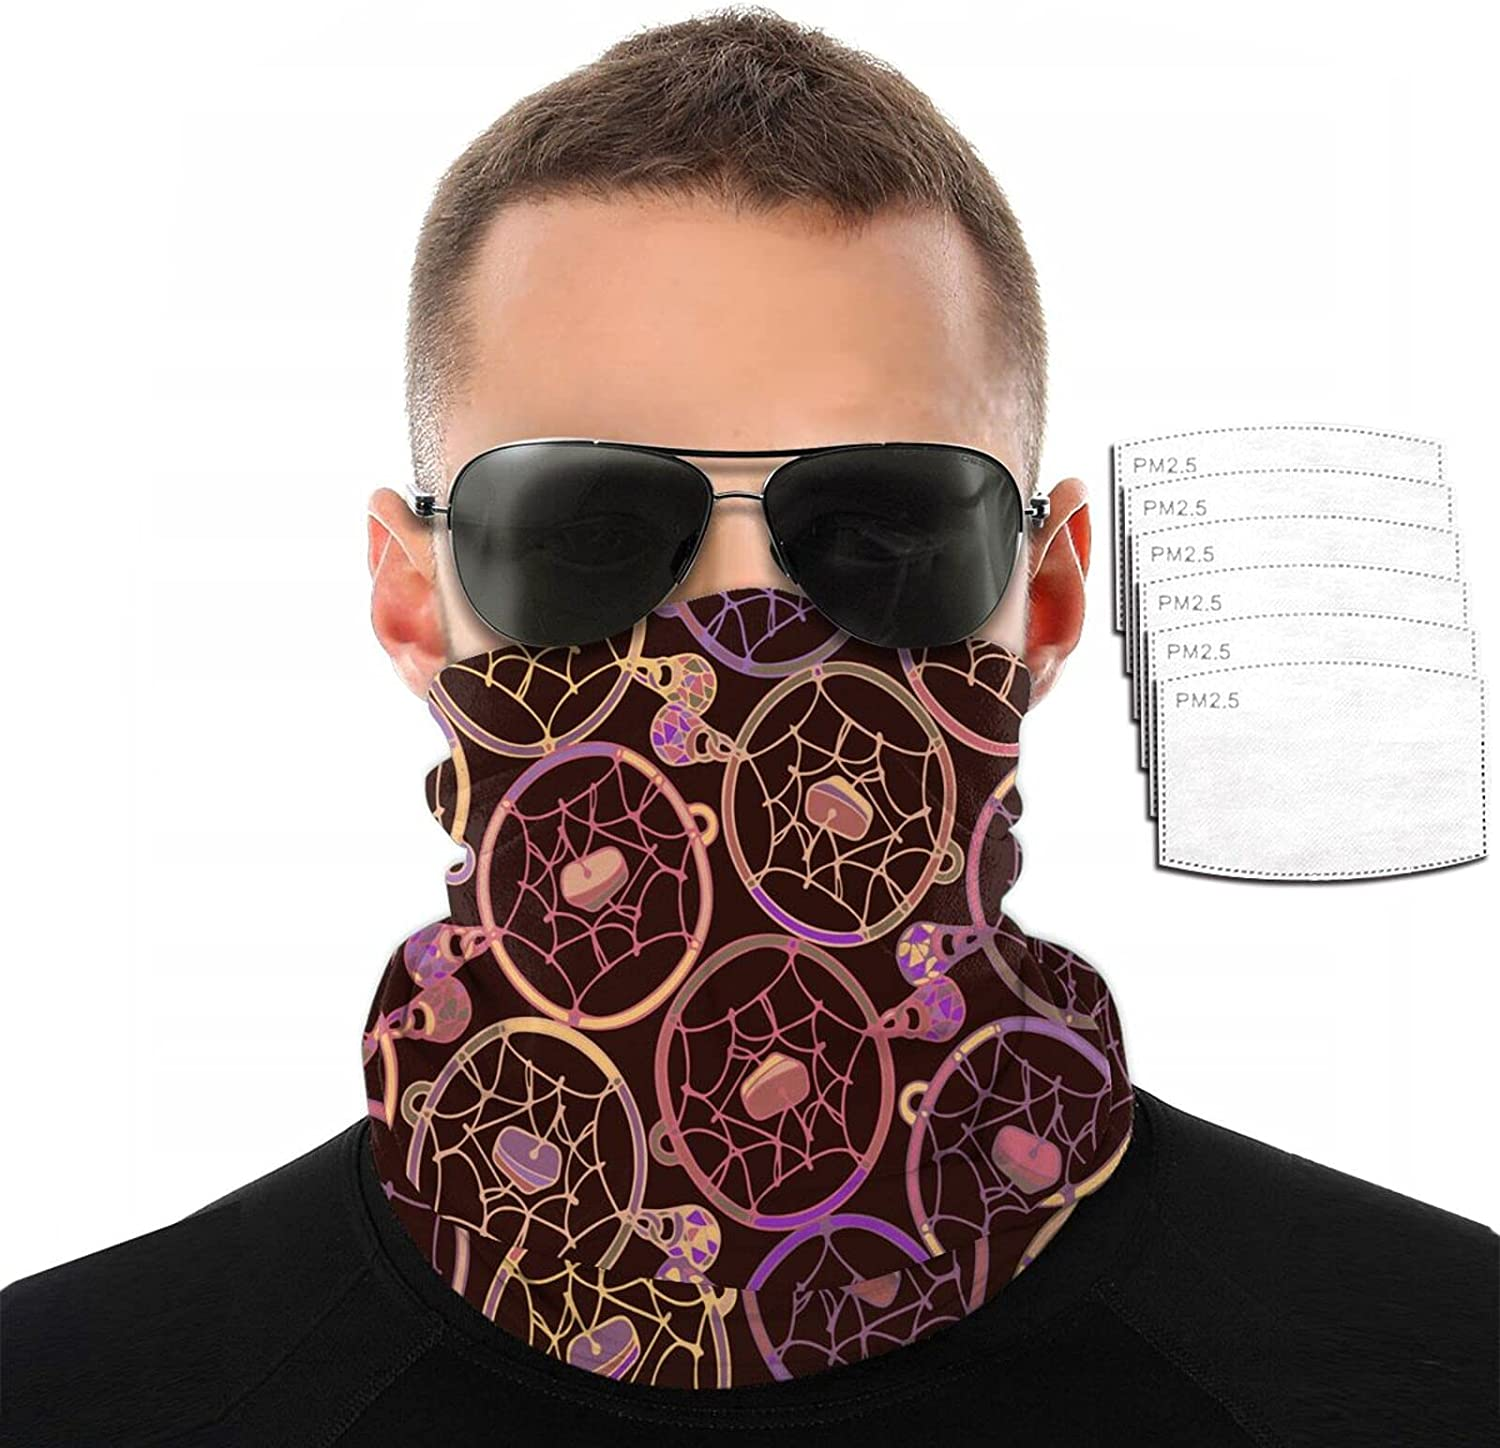 Gesdfwe Face Mask Reusable Native American Pattern Balaclava Dust Scarf with 6 Filter